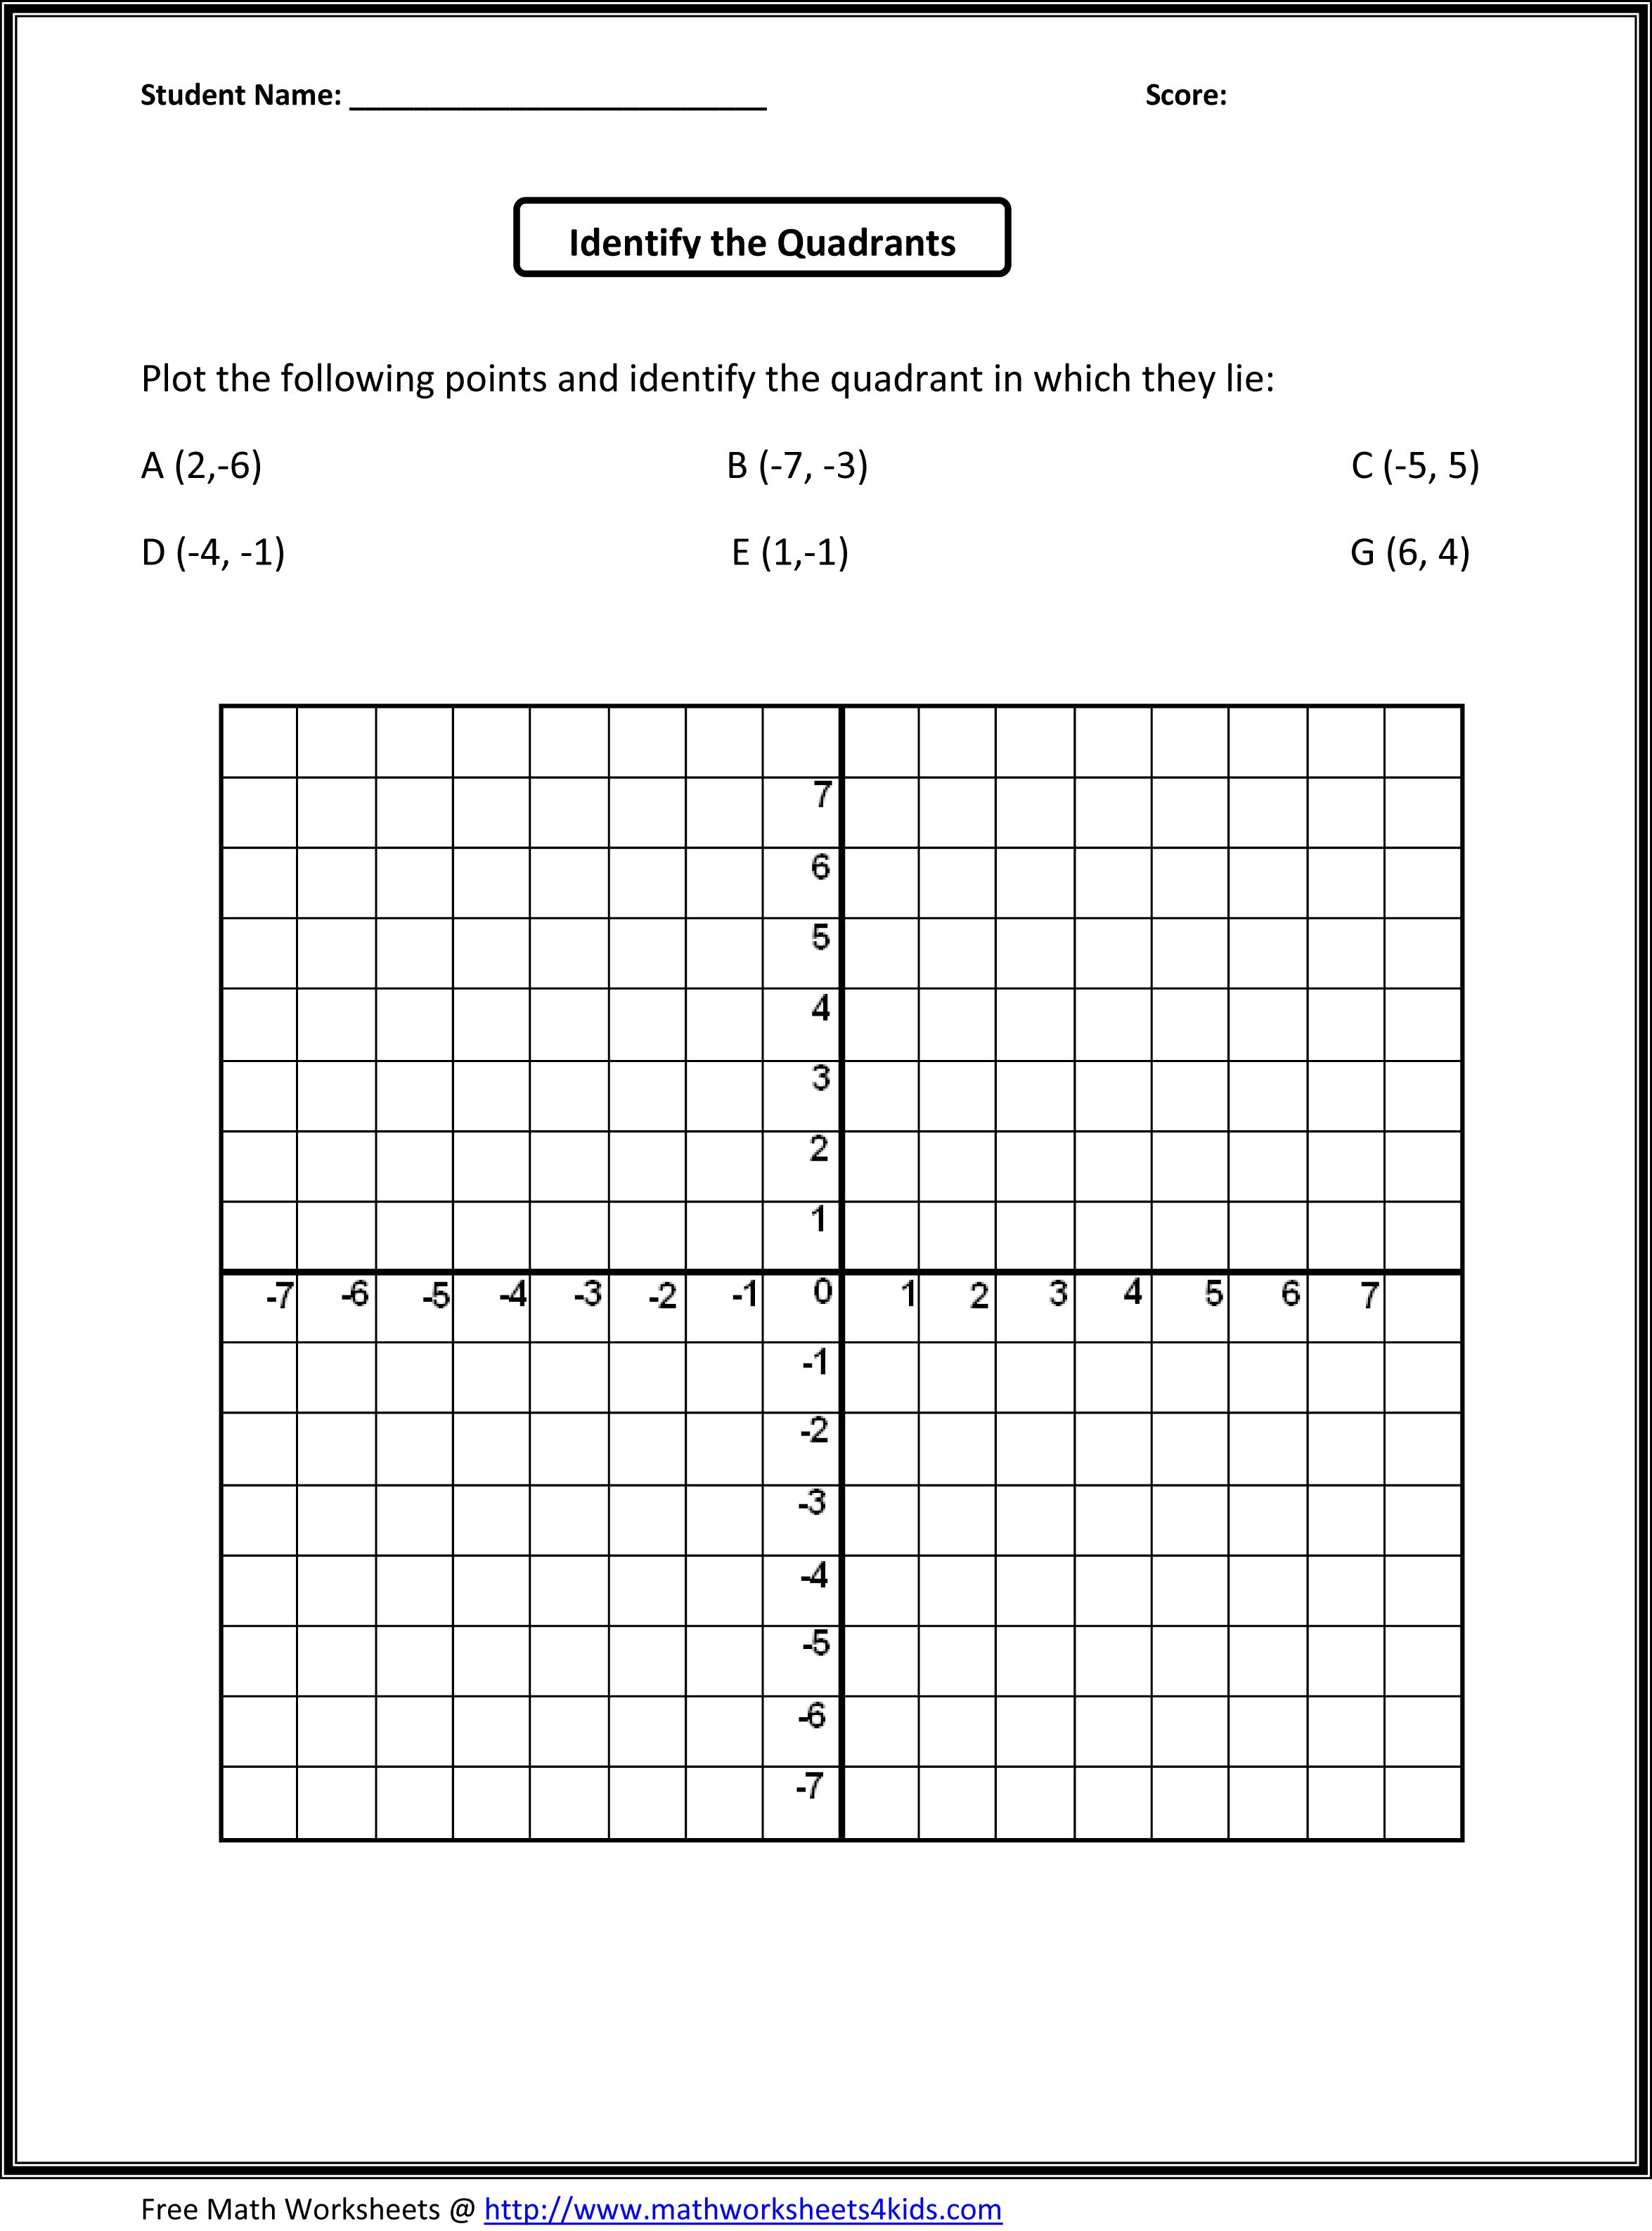 math worksheet : 1000 images about madi math on pinterest  5th grade math  : Math Fifth Grade Worksheets